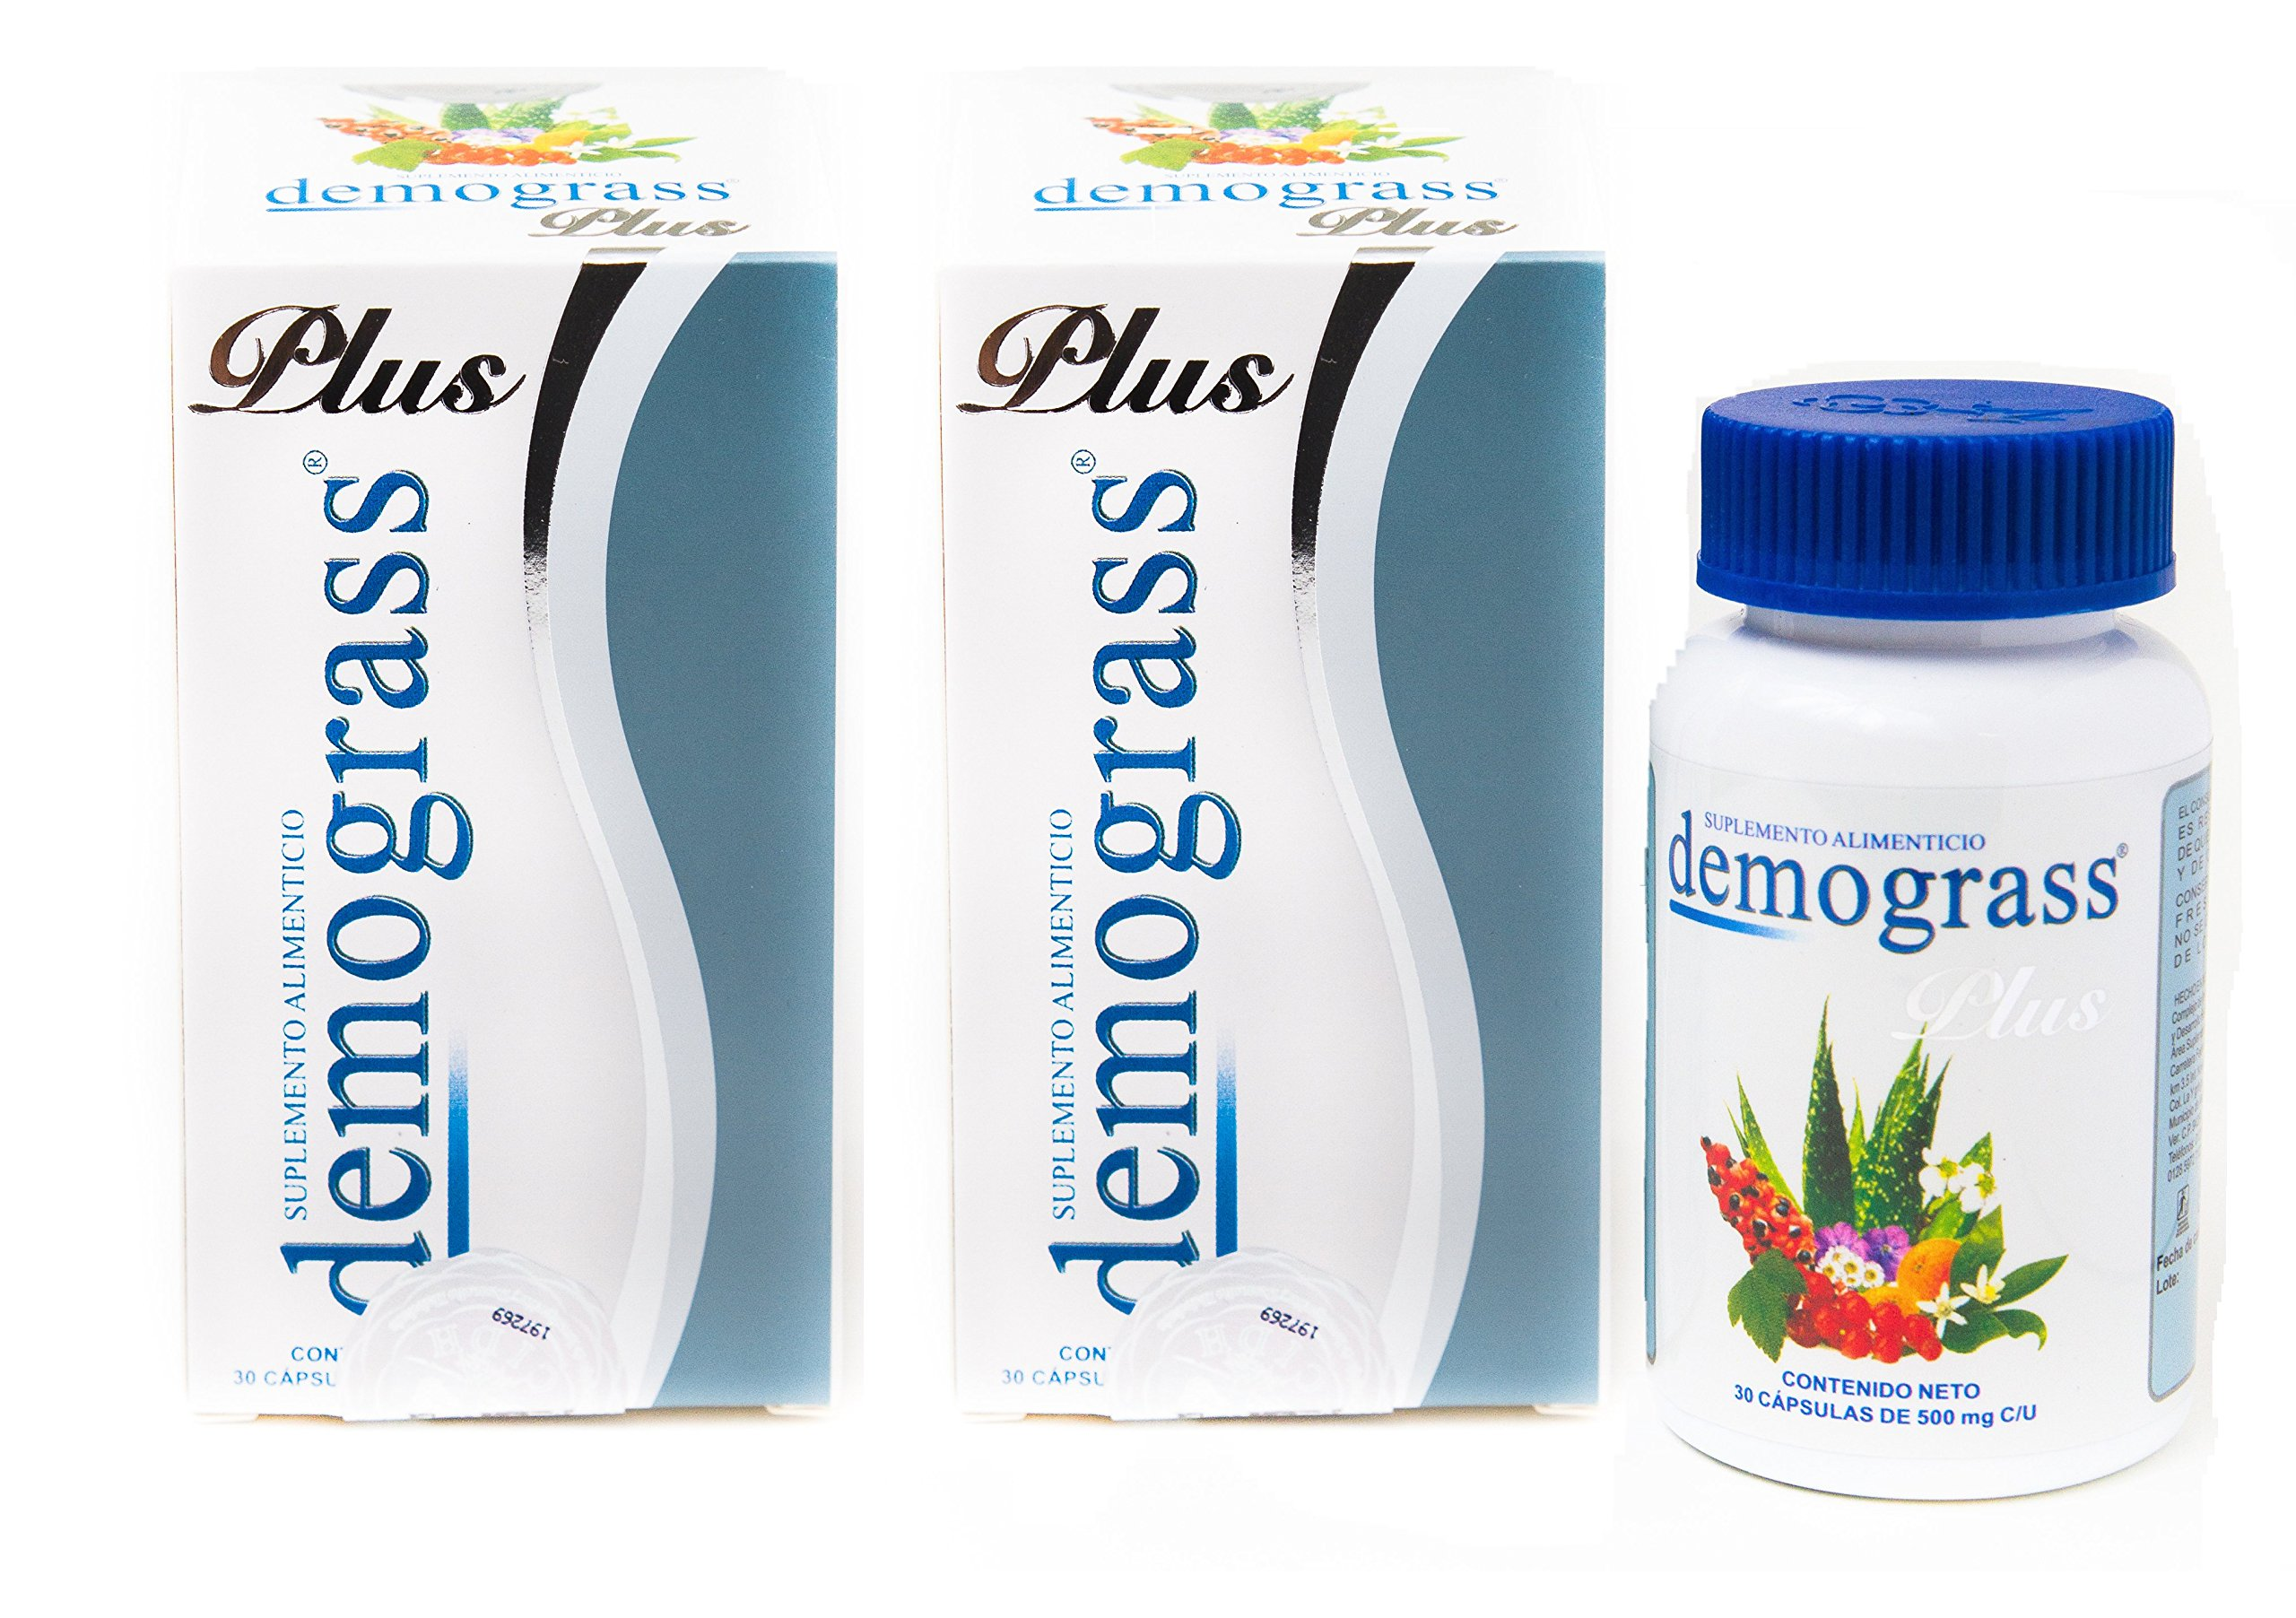 Demograss Plus 30 Day Supply Dietary Supplement USA Compliant Packaging (2 Pack)